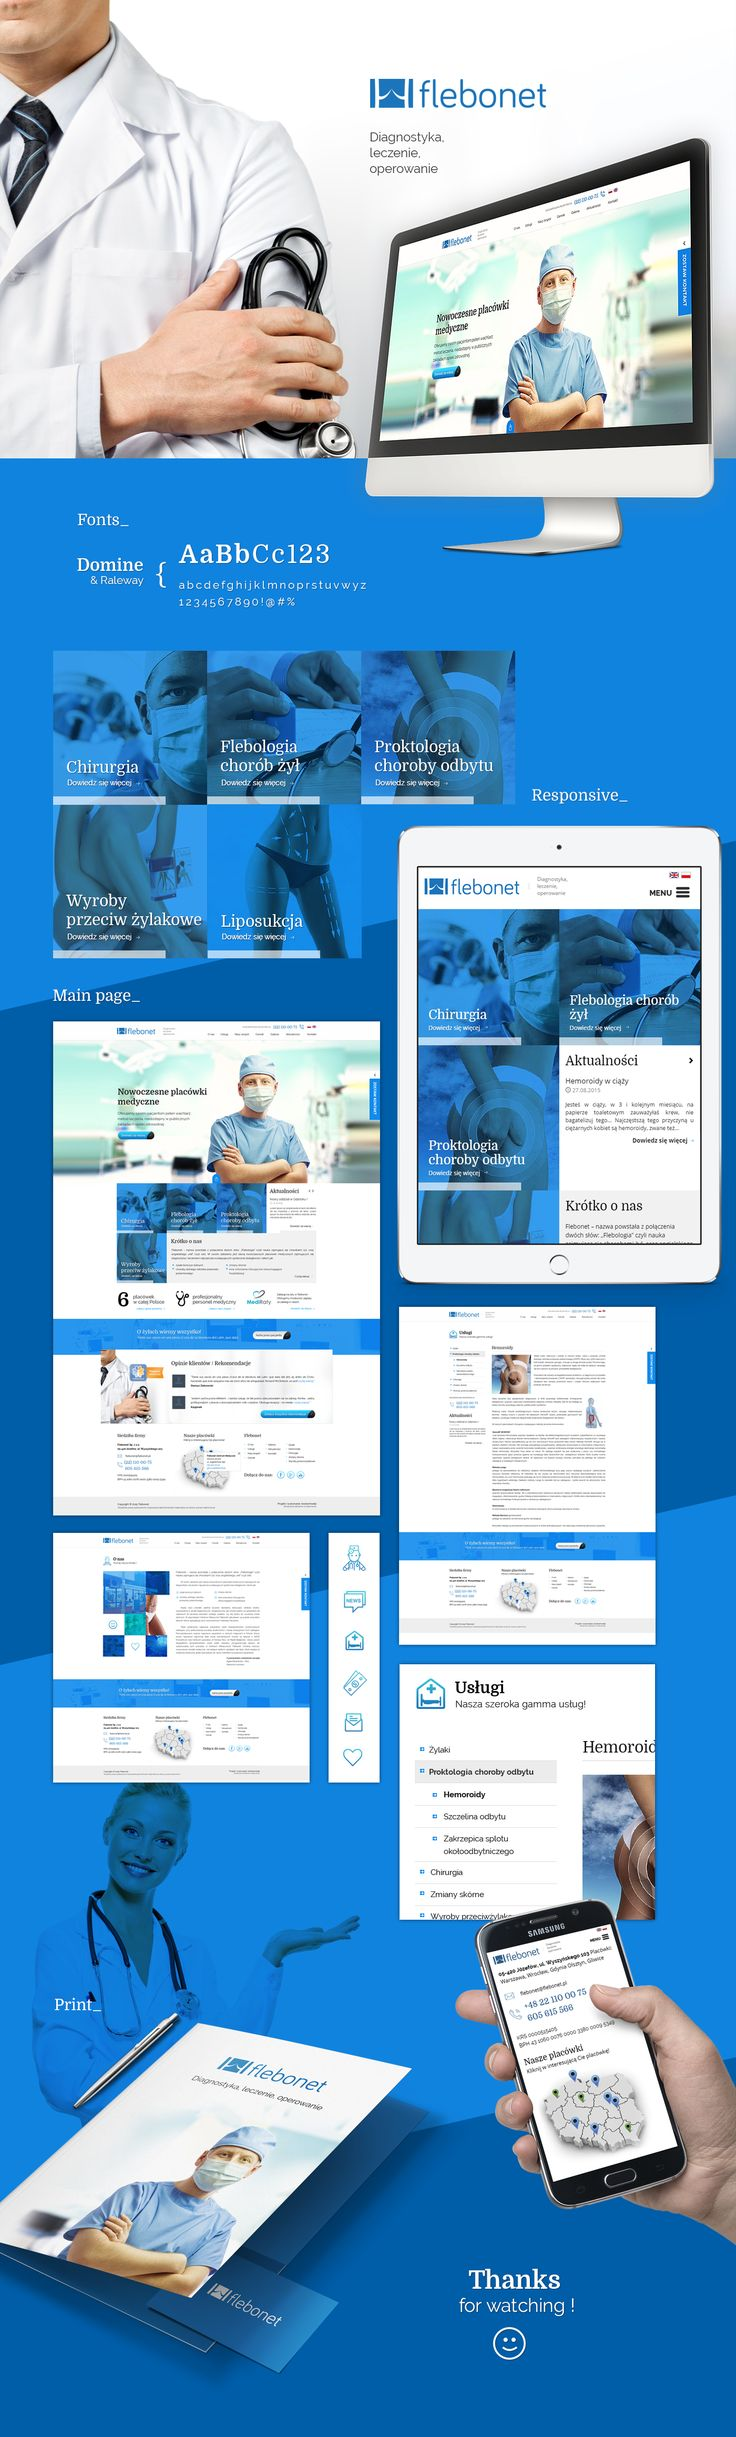 Flebonet - Medic centrum on Behance